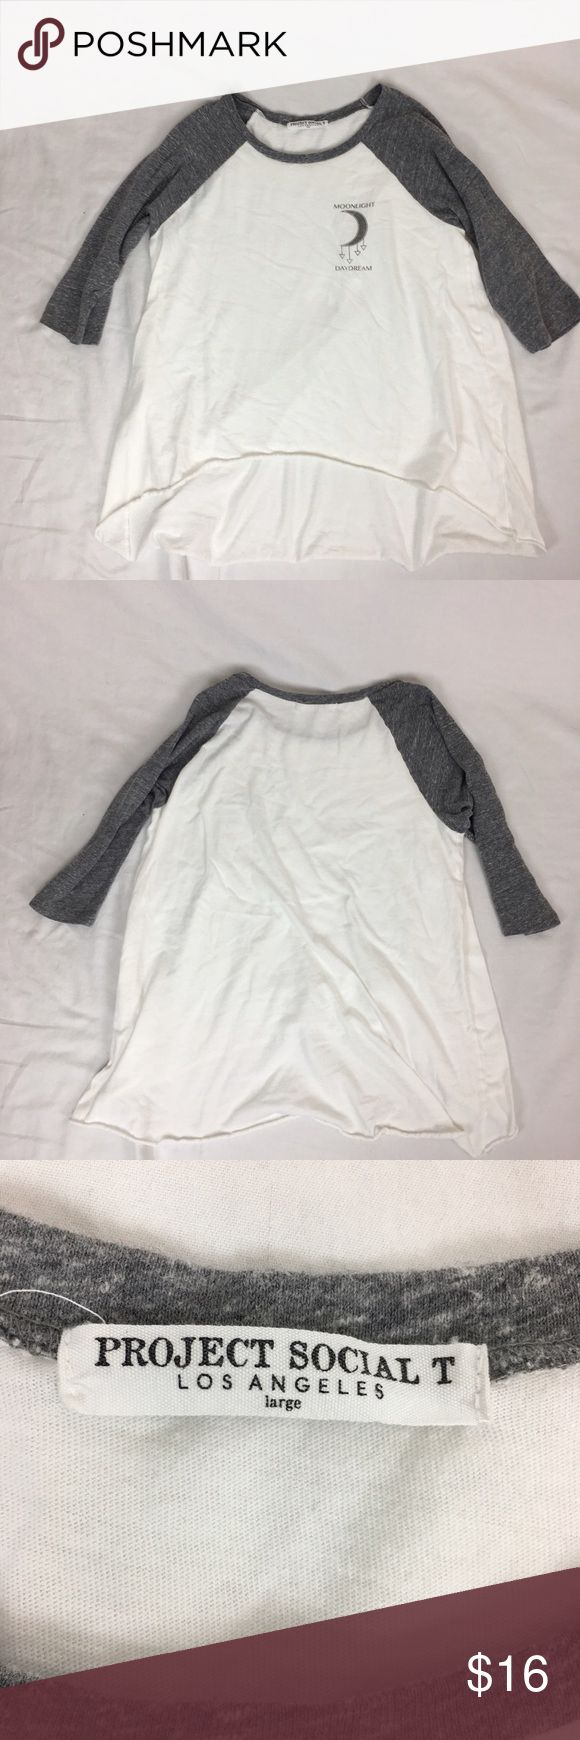 Project Social T Nordstrom Baseball Graphic Tee A hipster chic baseball graphic tee from Nordstrom. Brand is Project Social T. Size large. EUC with no flaws. Nordstrom Tops Tees - Long Sleeve